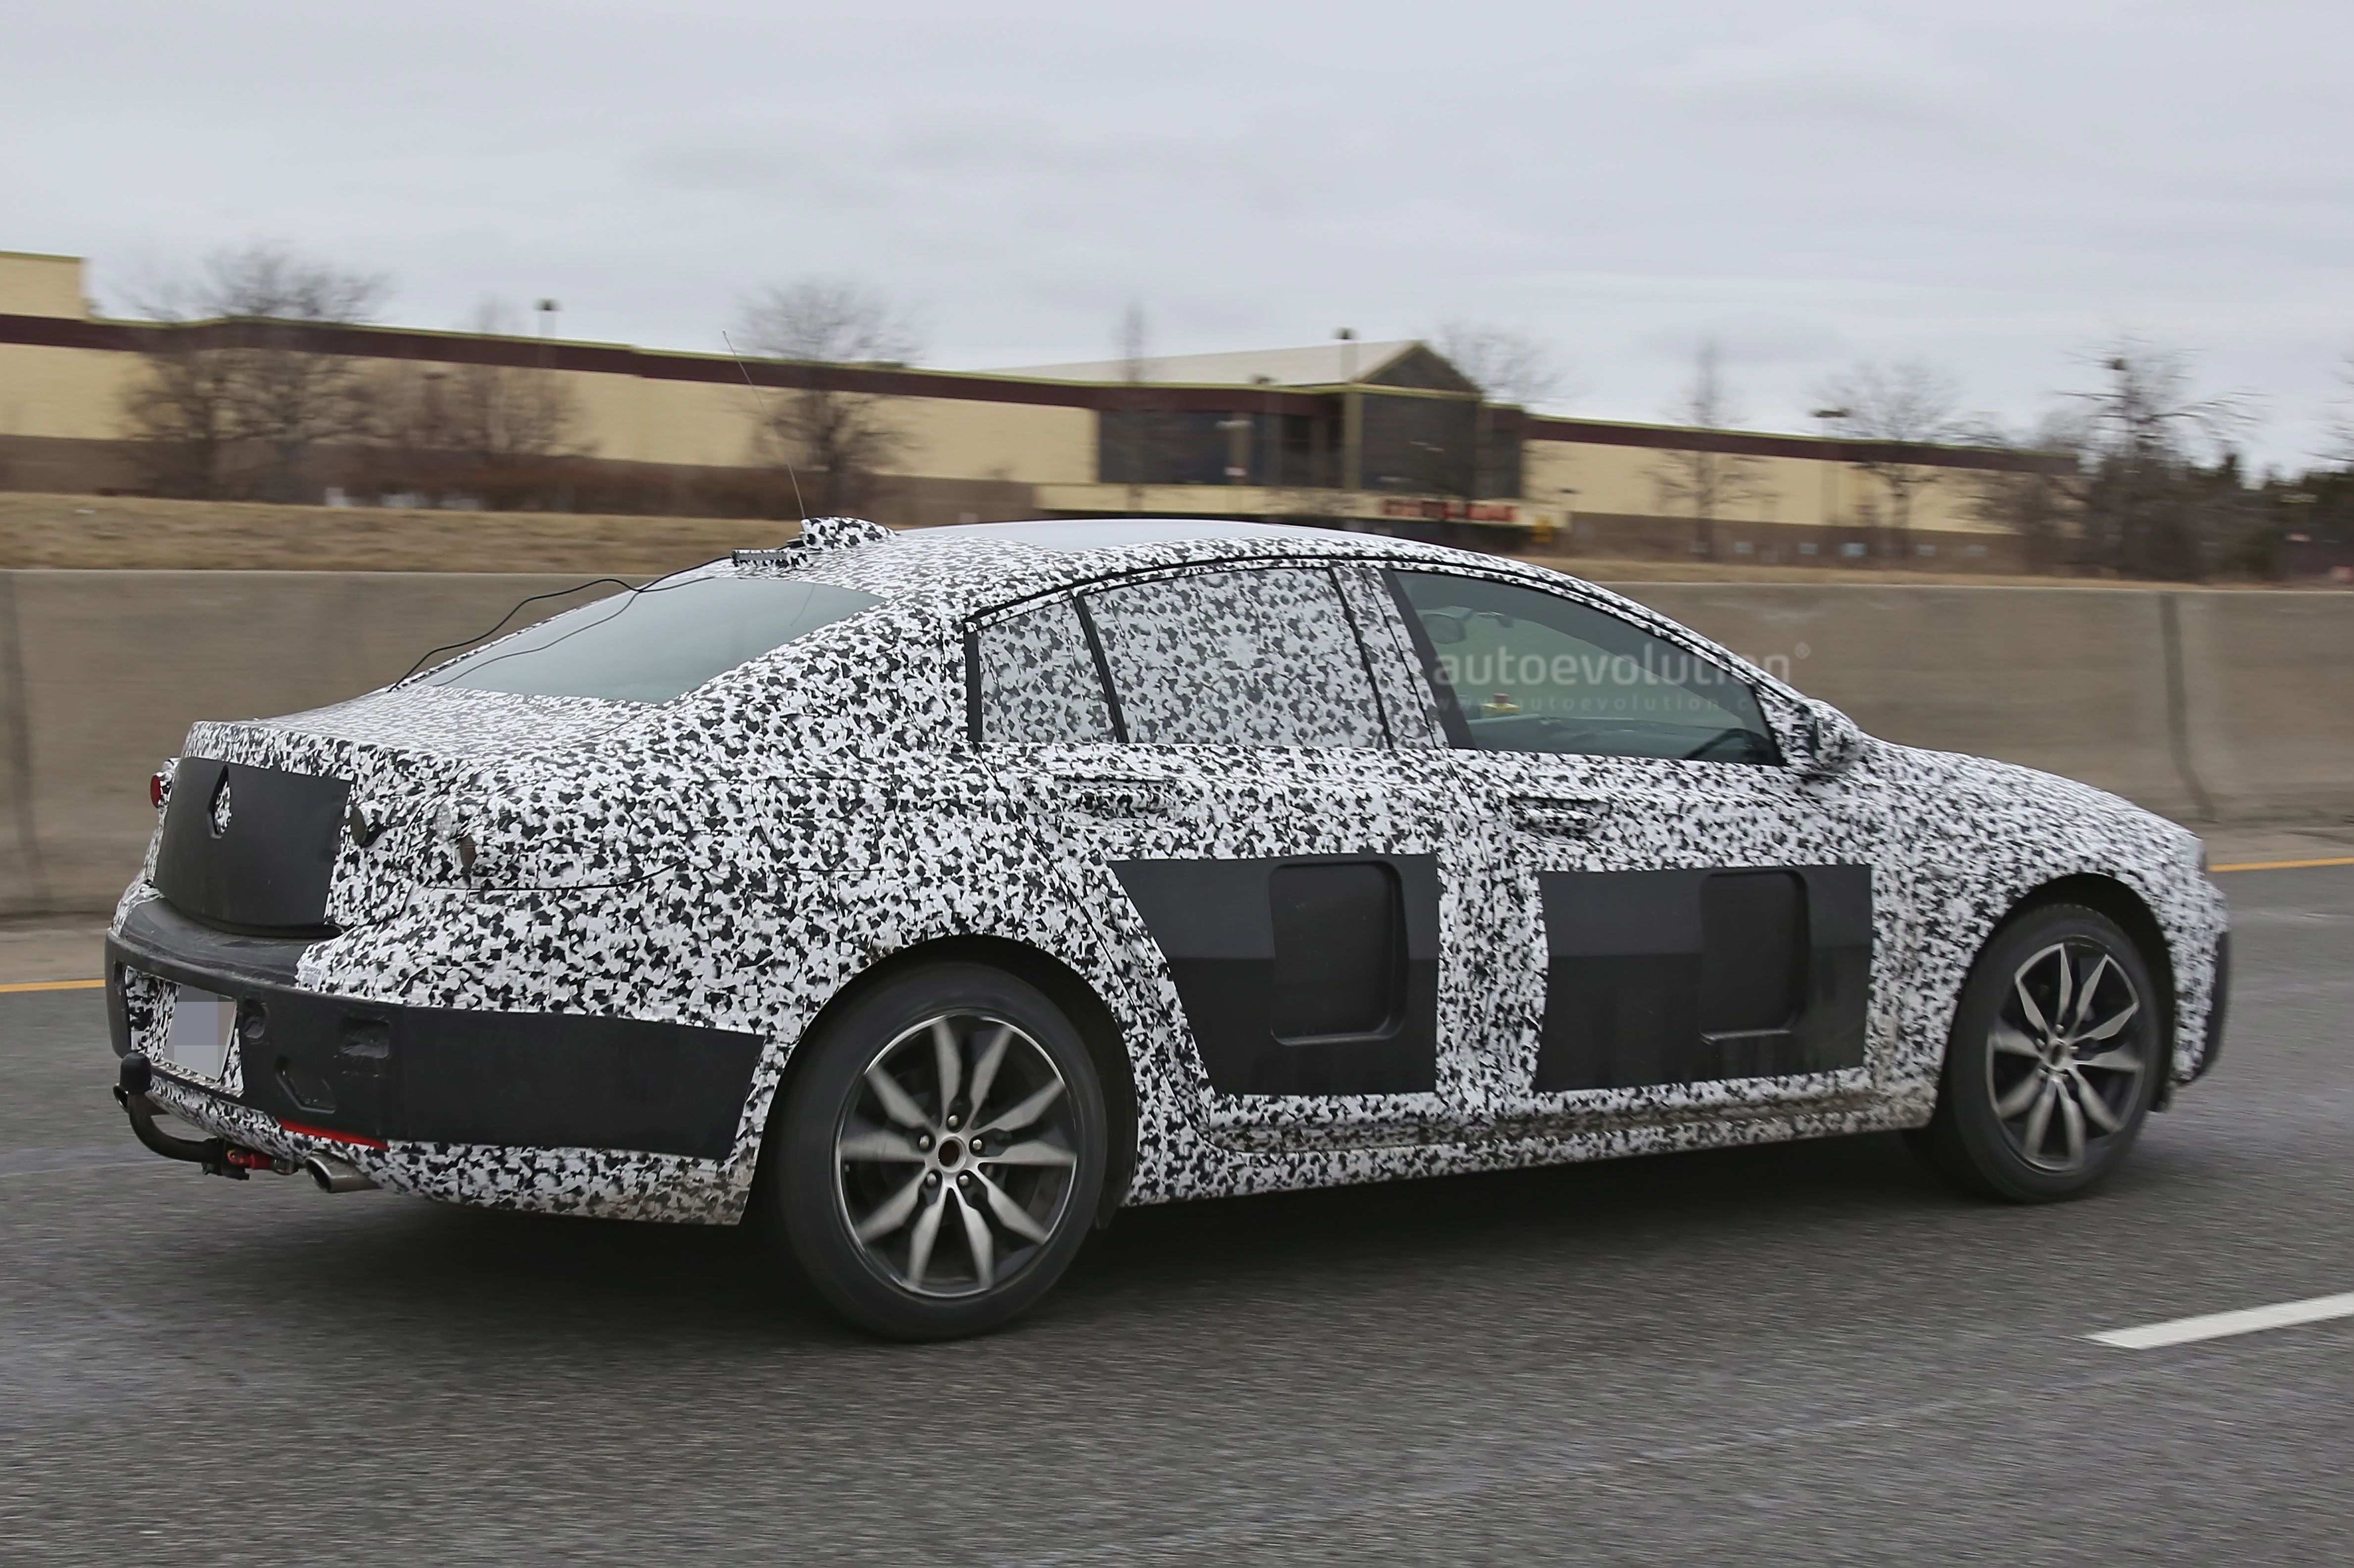 81 New 2019 Buick Verano Spy Picture